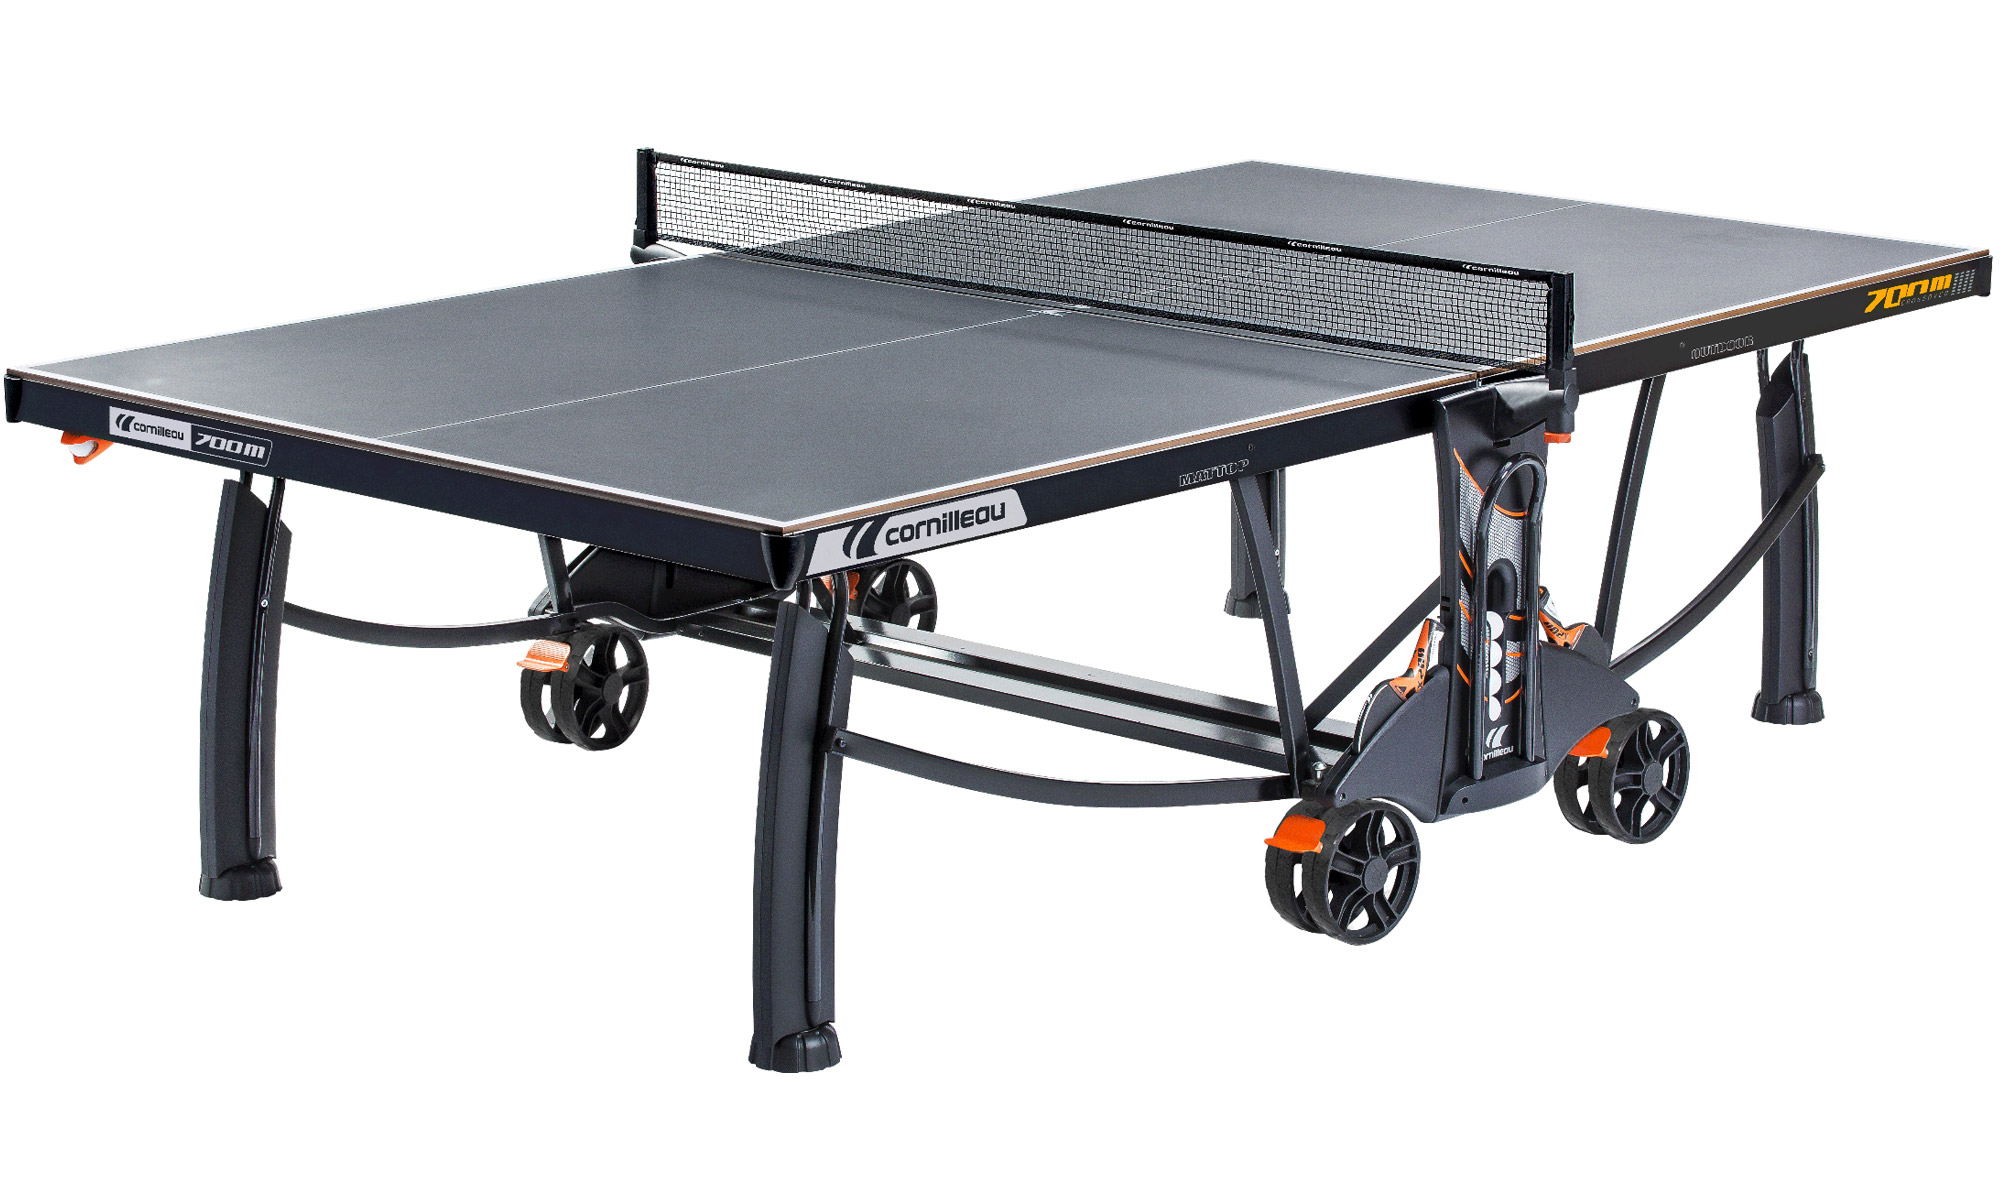 Cornilleau Performance 700M Crossover Grey Outdoor Table Tennis Table